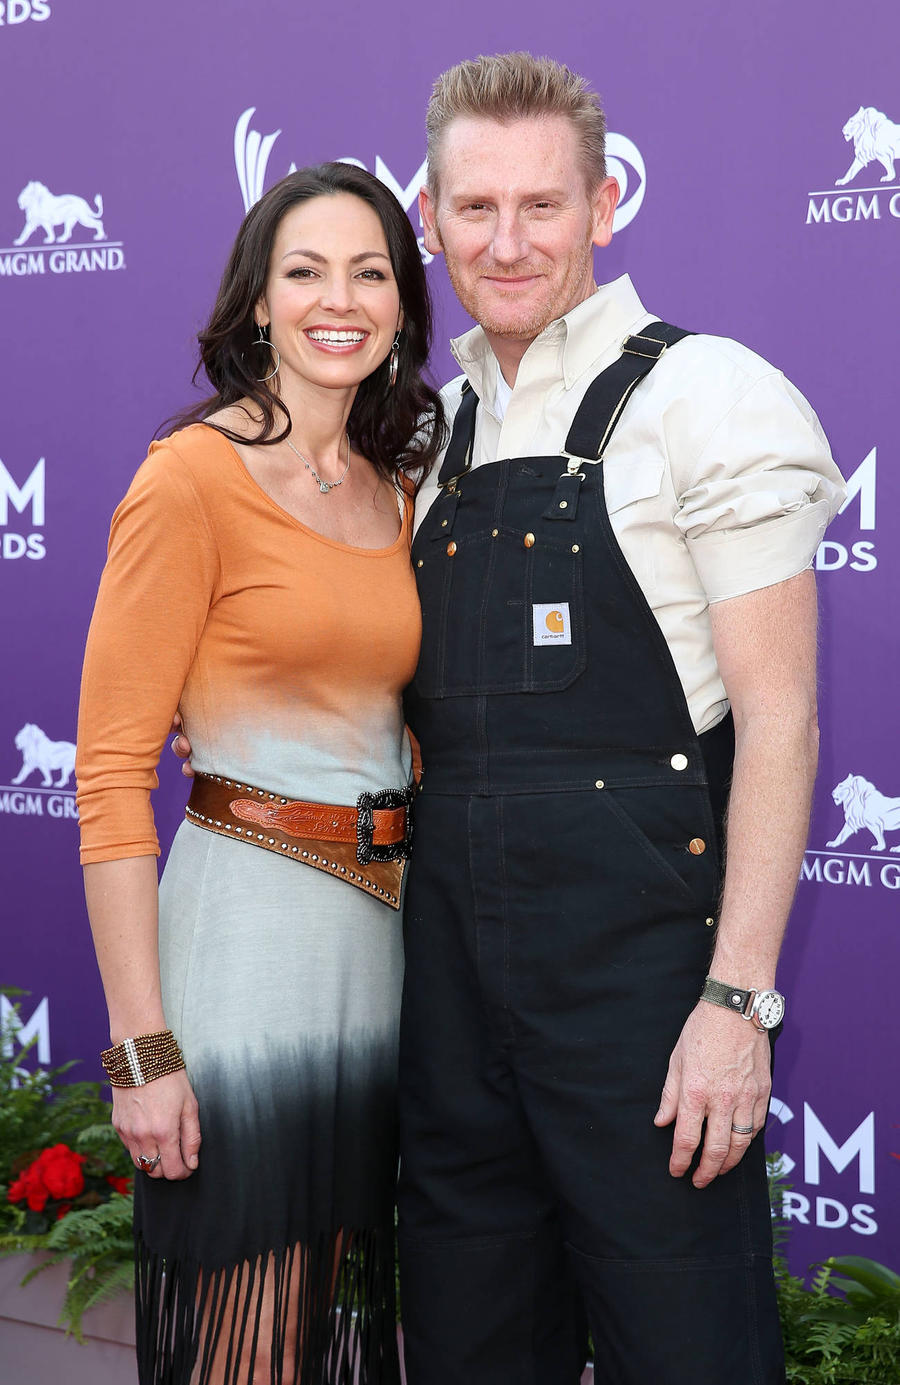 Rory Feek Taking Late Wife's Parents To Cma Awards